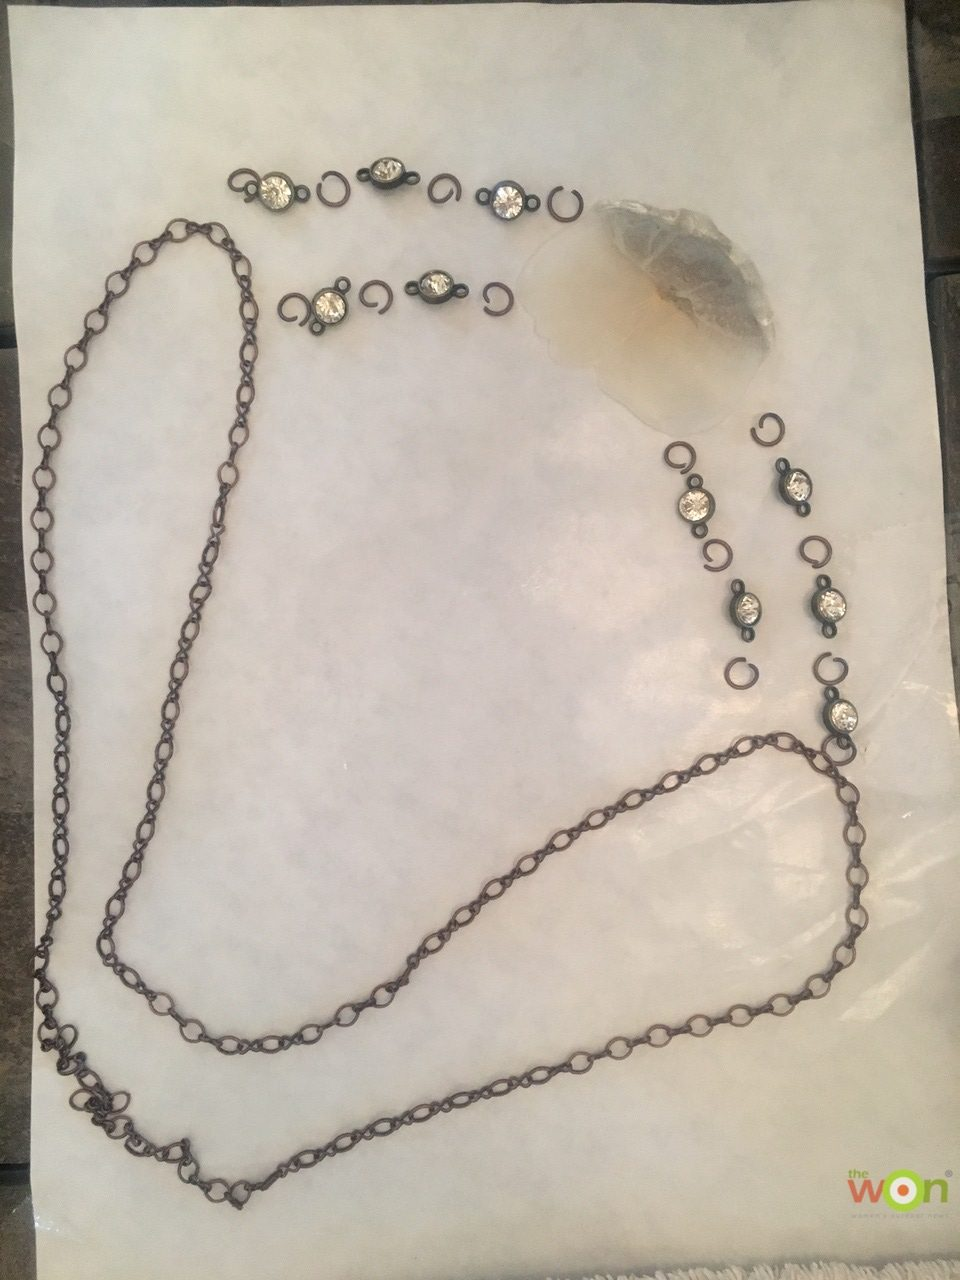 Tarpon scale necklace materials